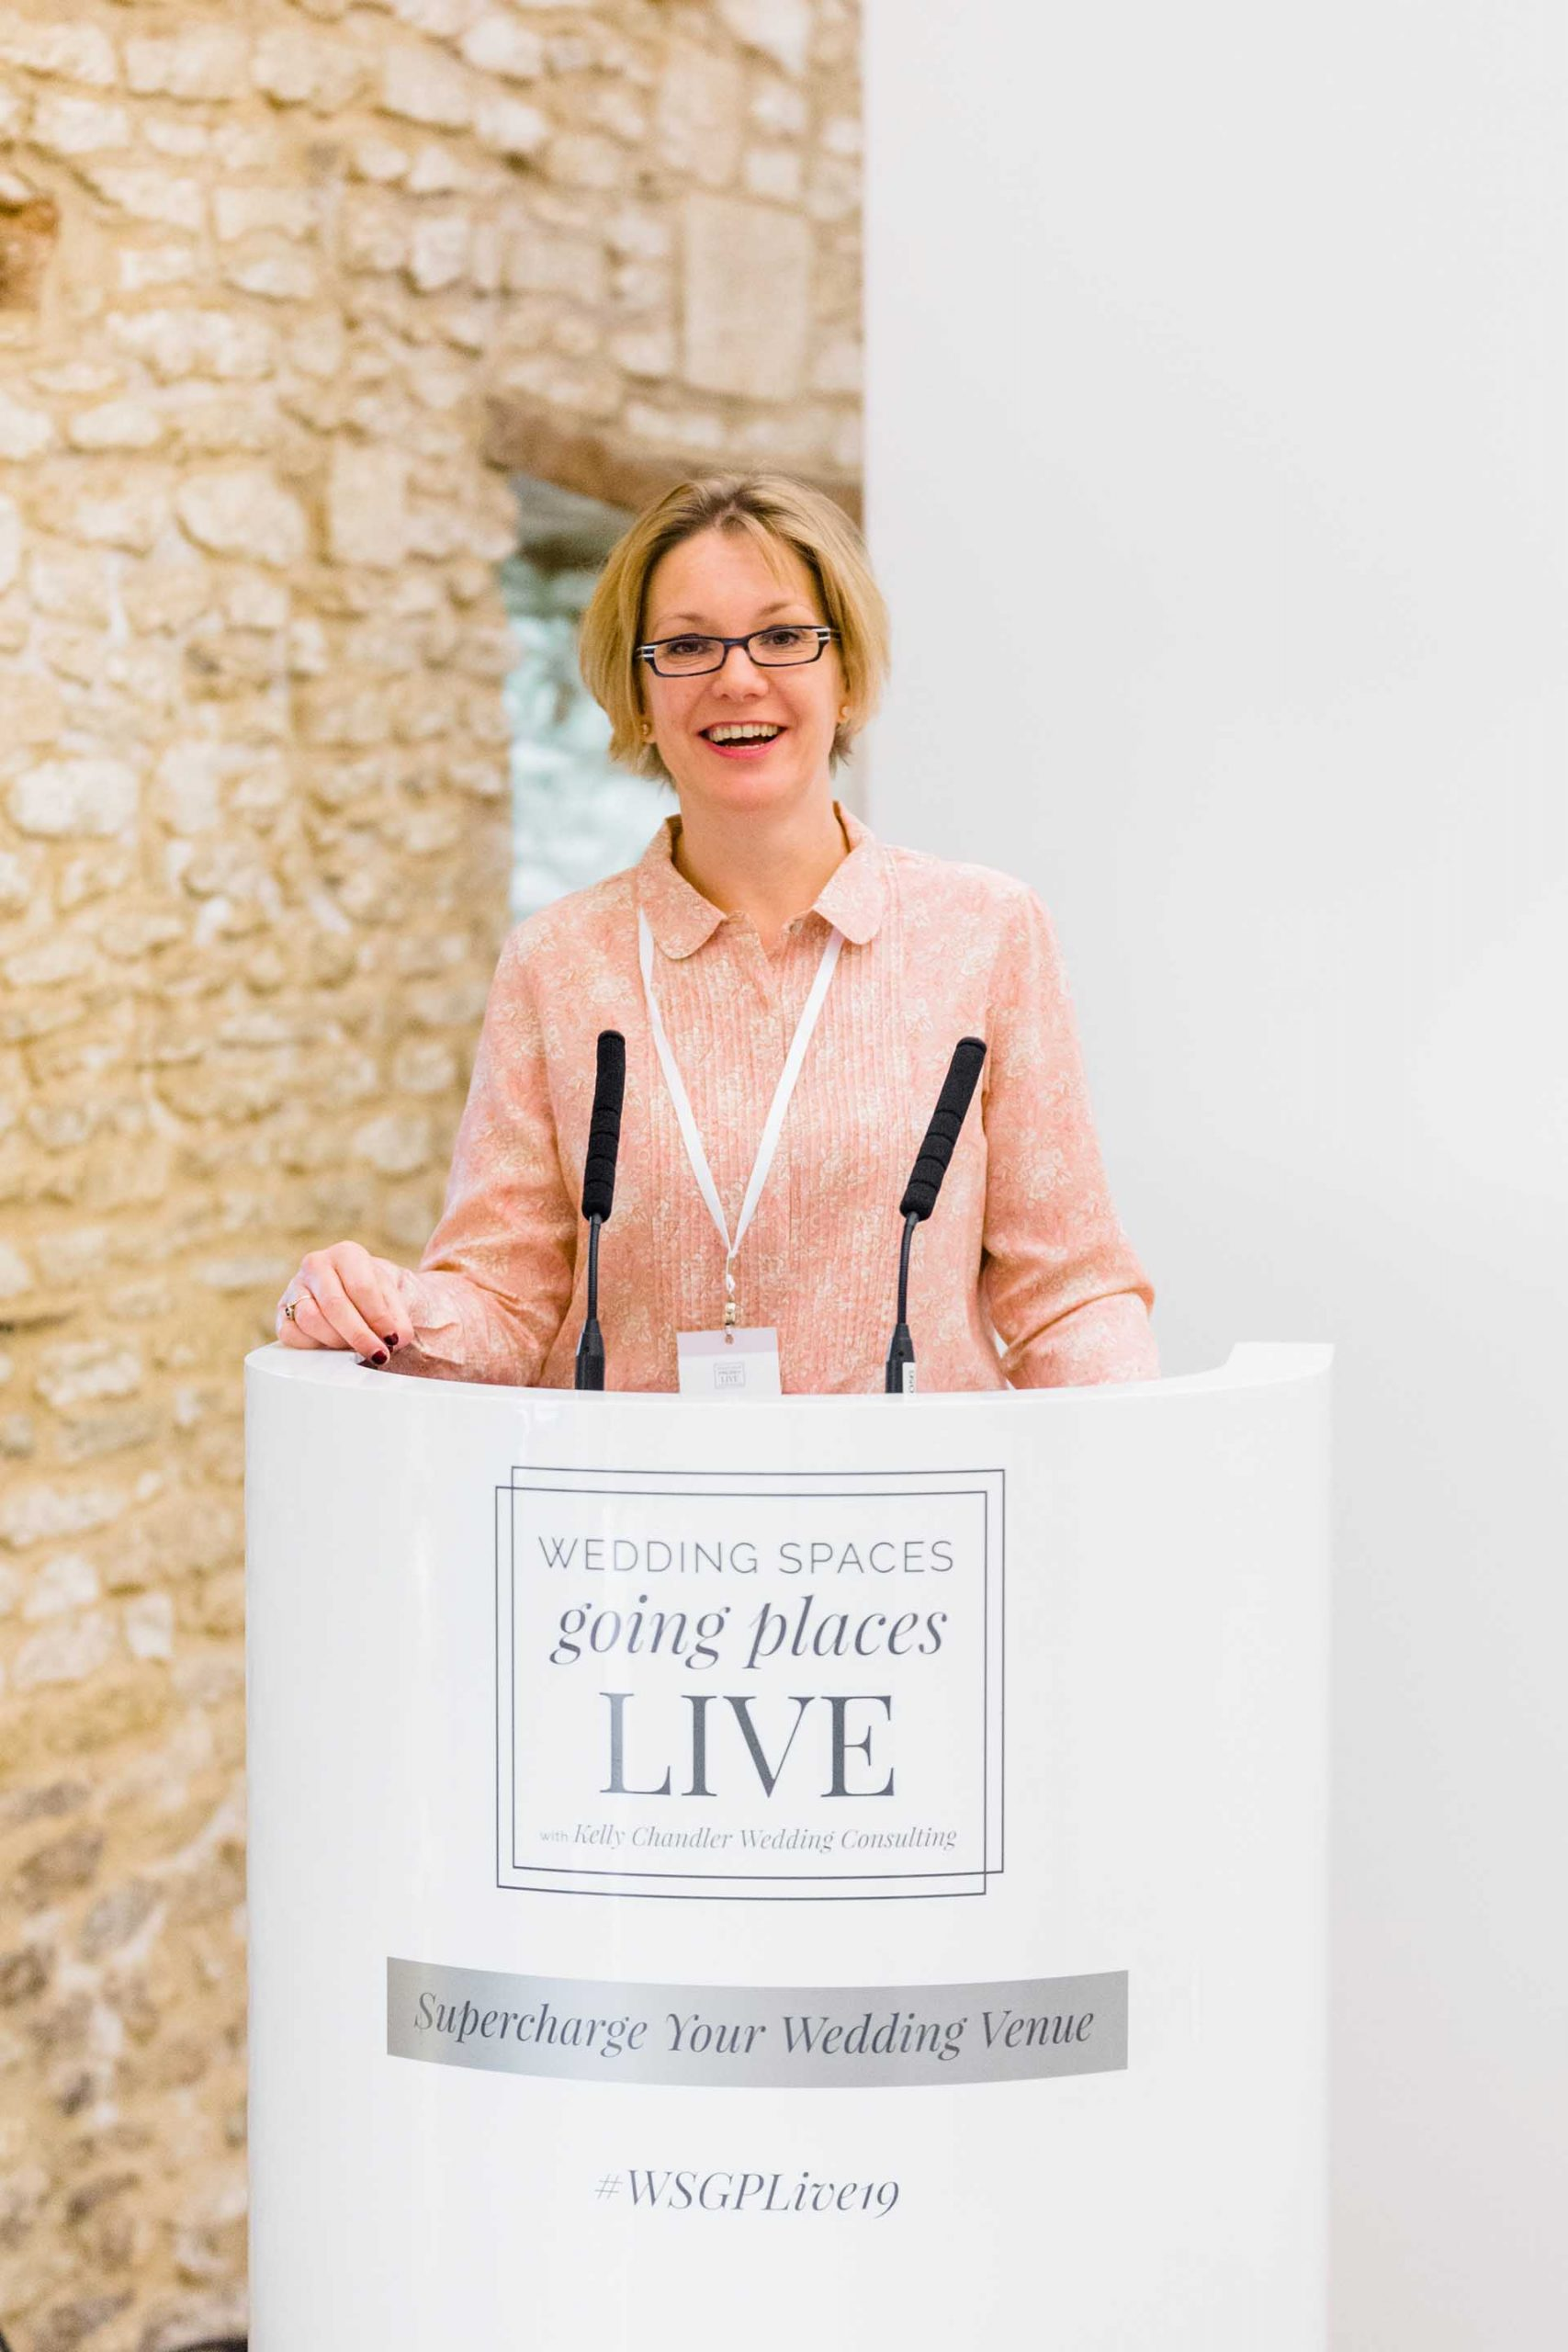 Kelly Chandler behind podium at conference for wedding venue owners